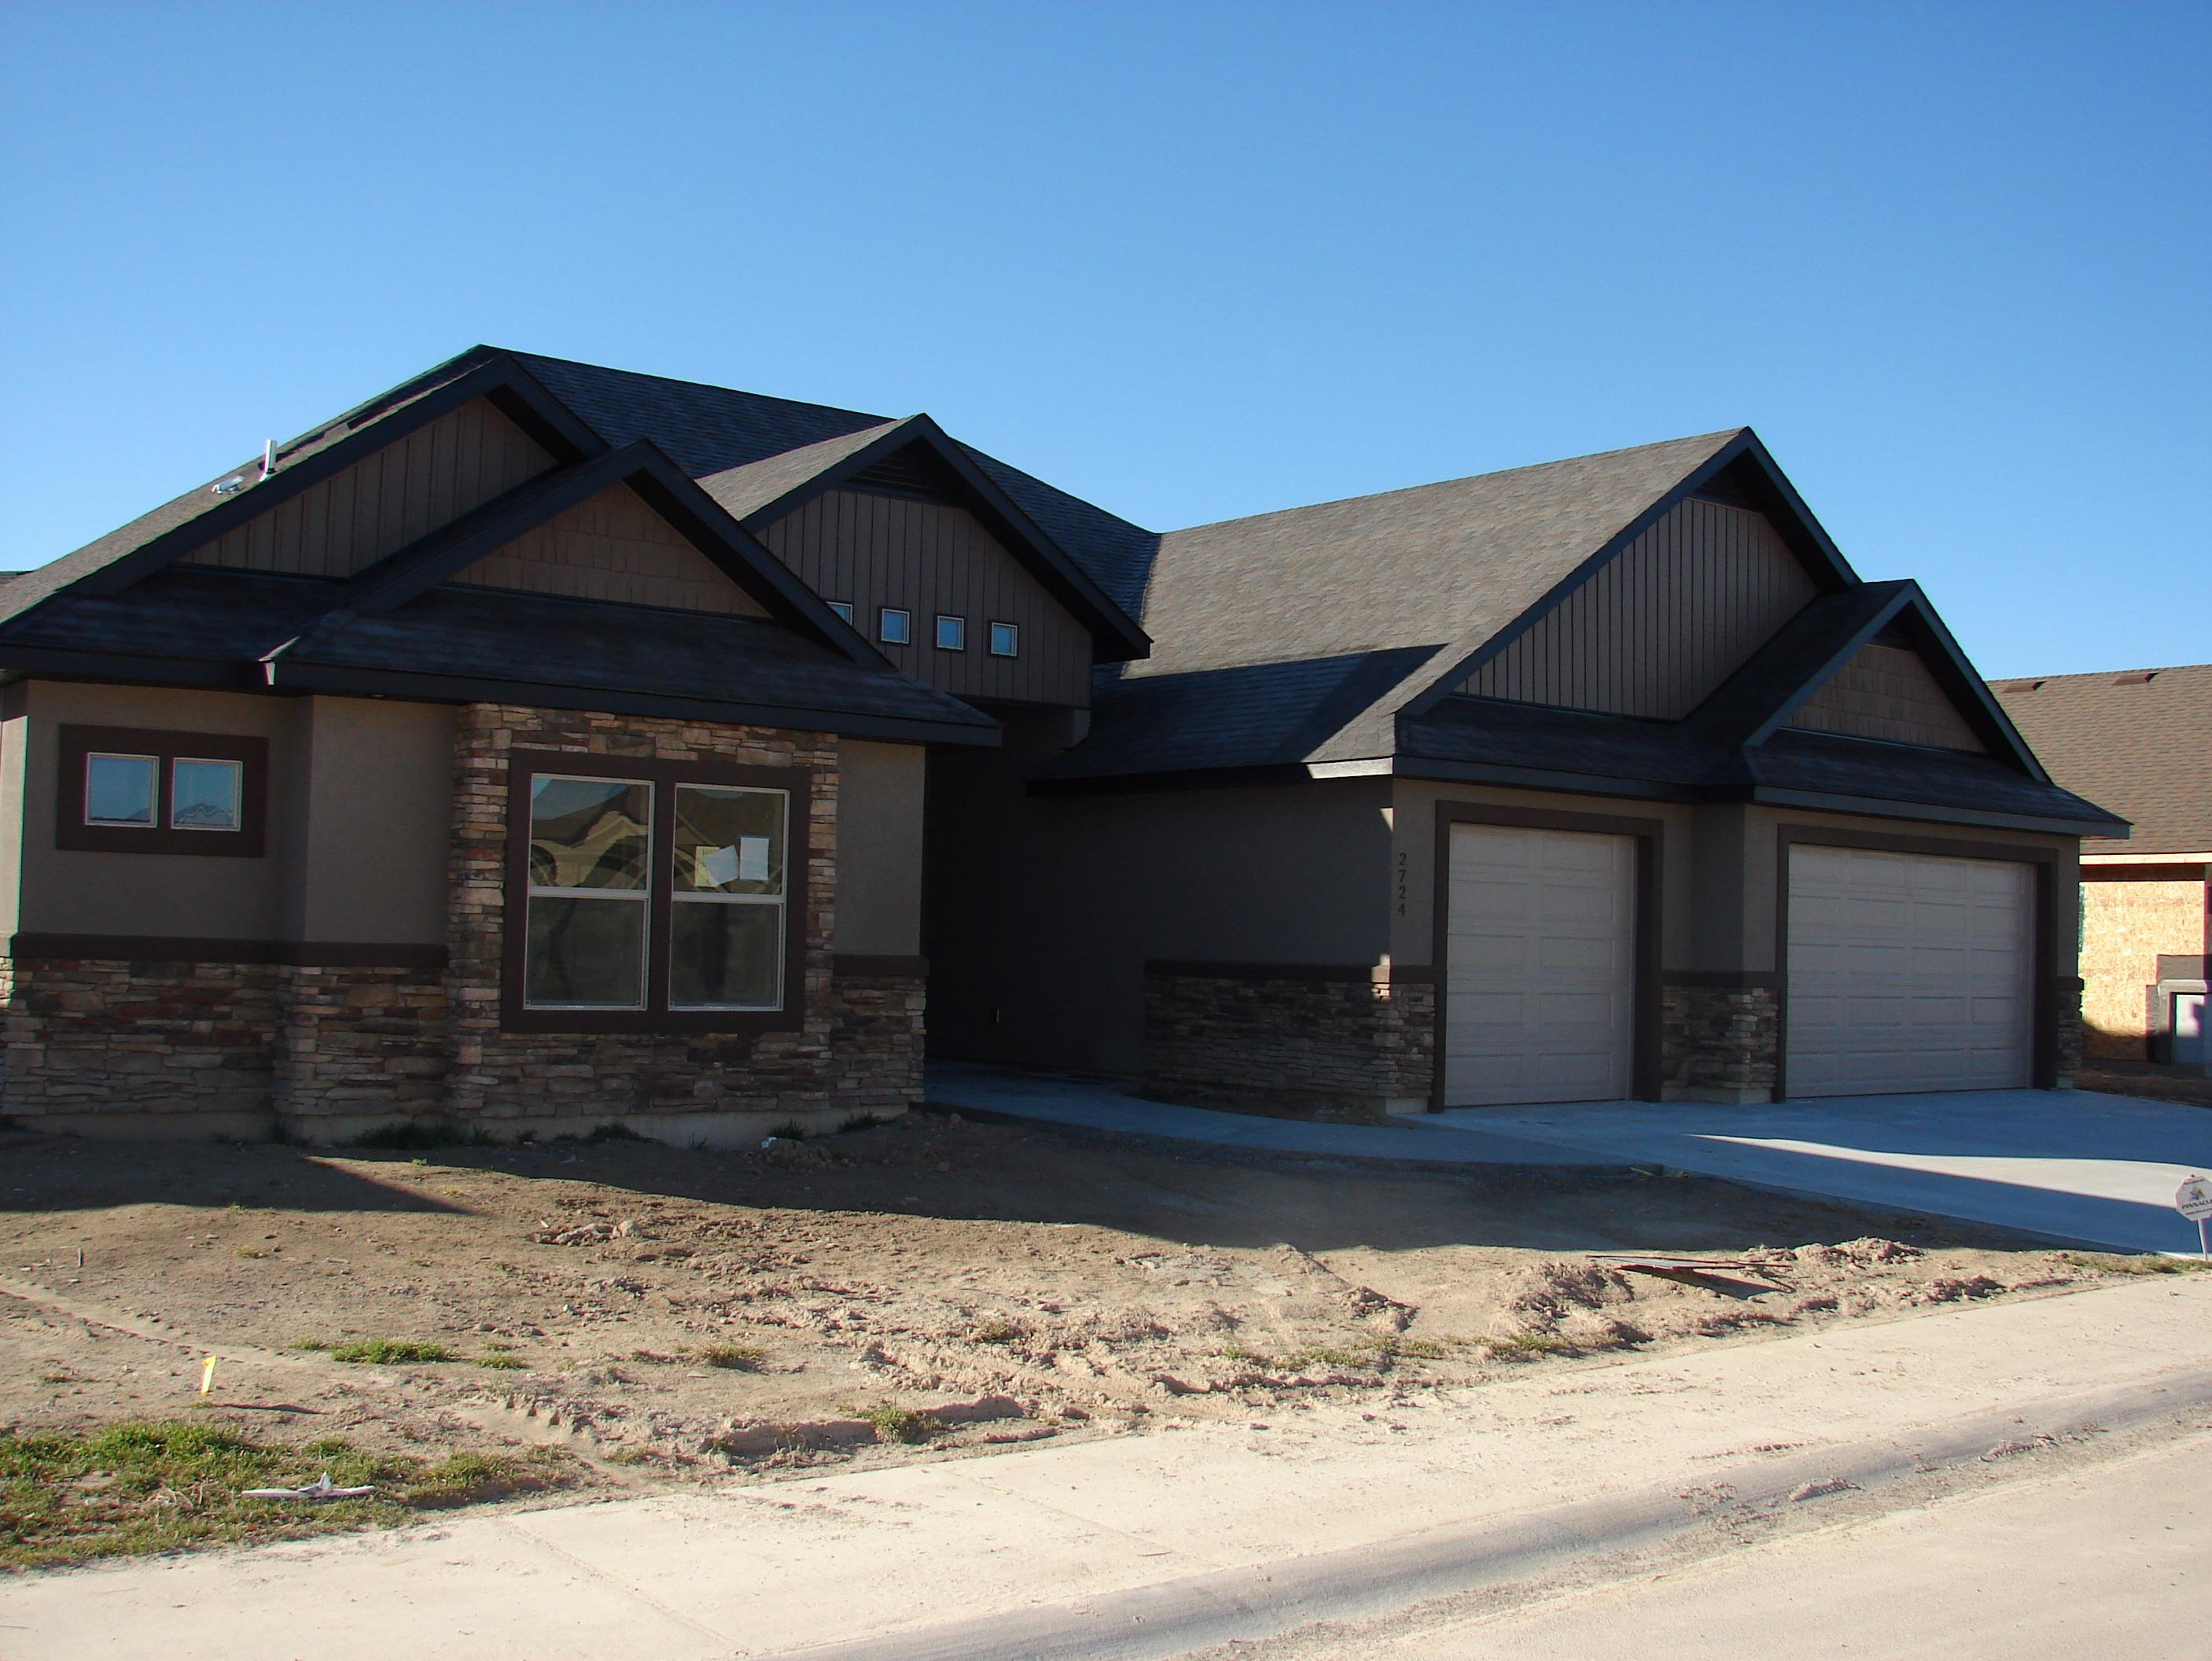 Nelson custom homes coupons near me in twin falls 8coupons for Custom home builders near me